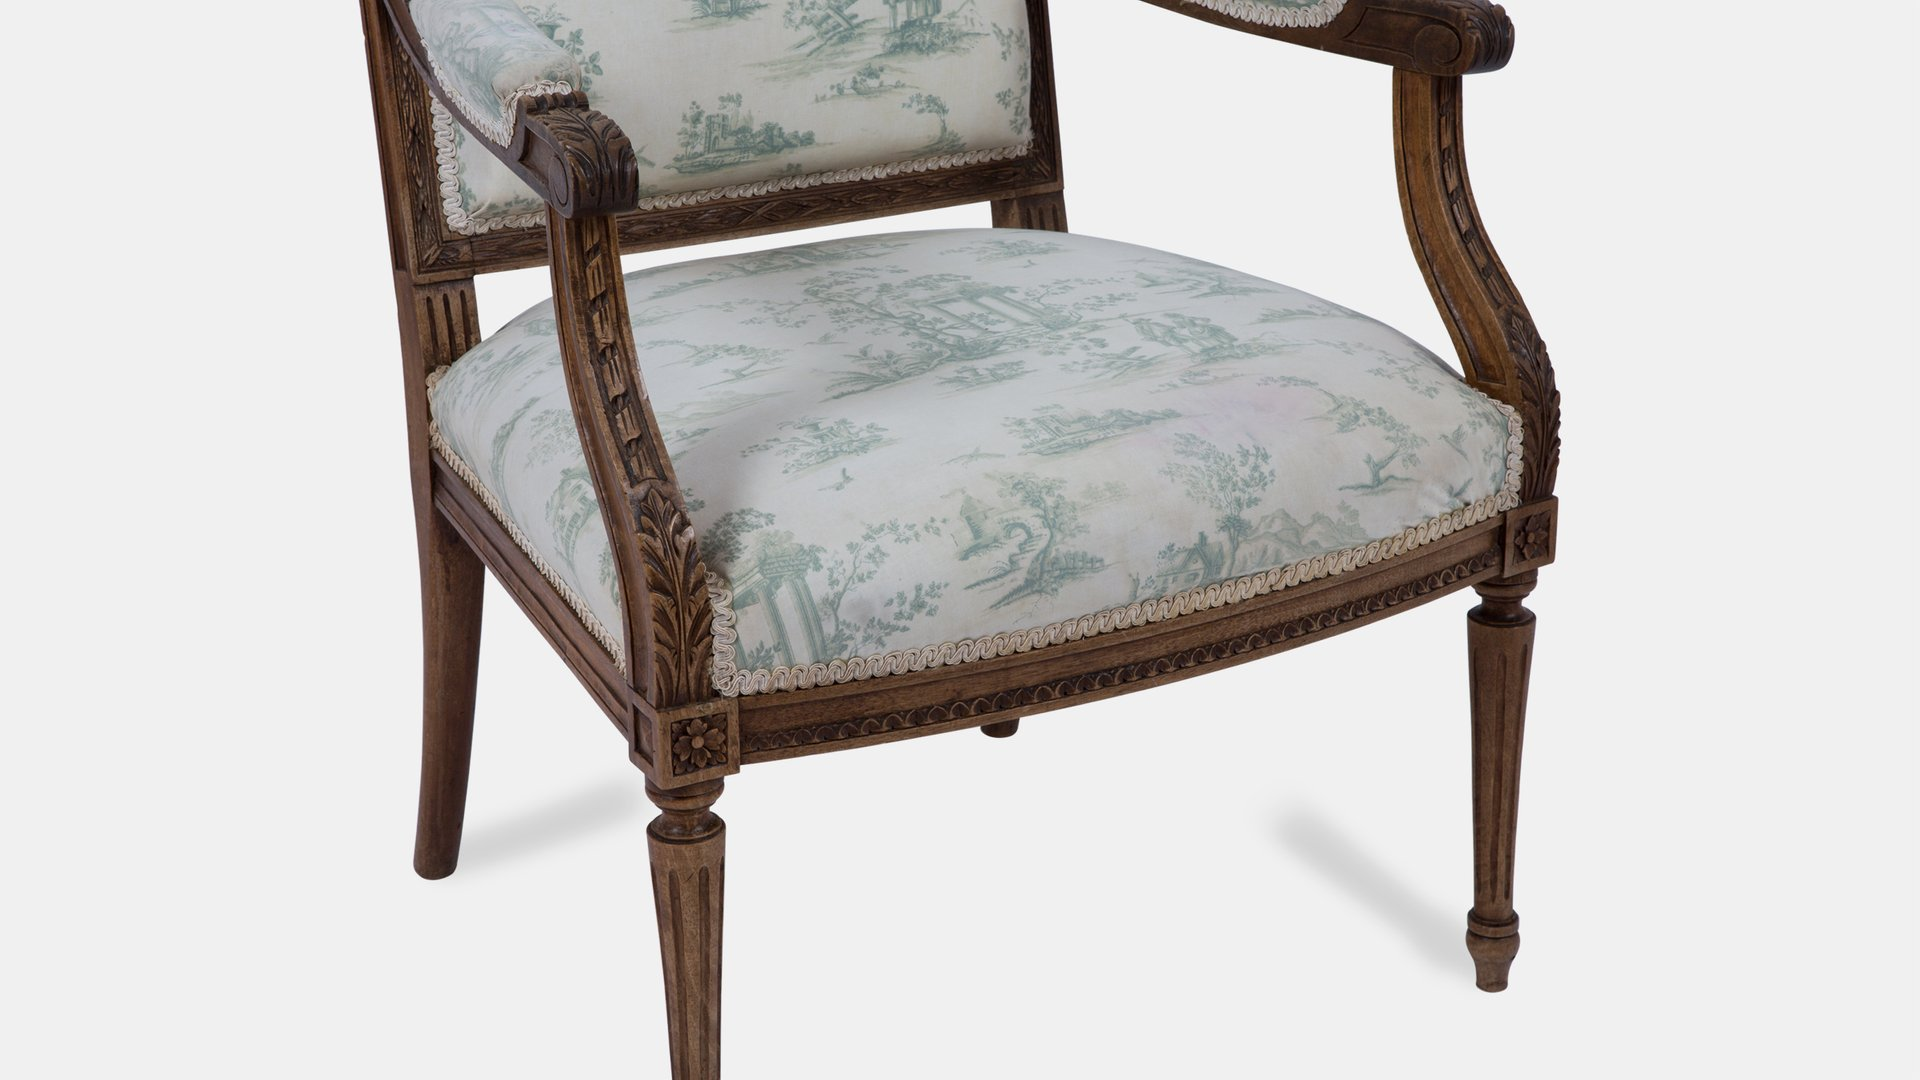 Toile Salon Antique French Toile Salon Suite For Sale At Pamono